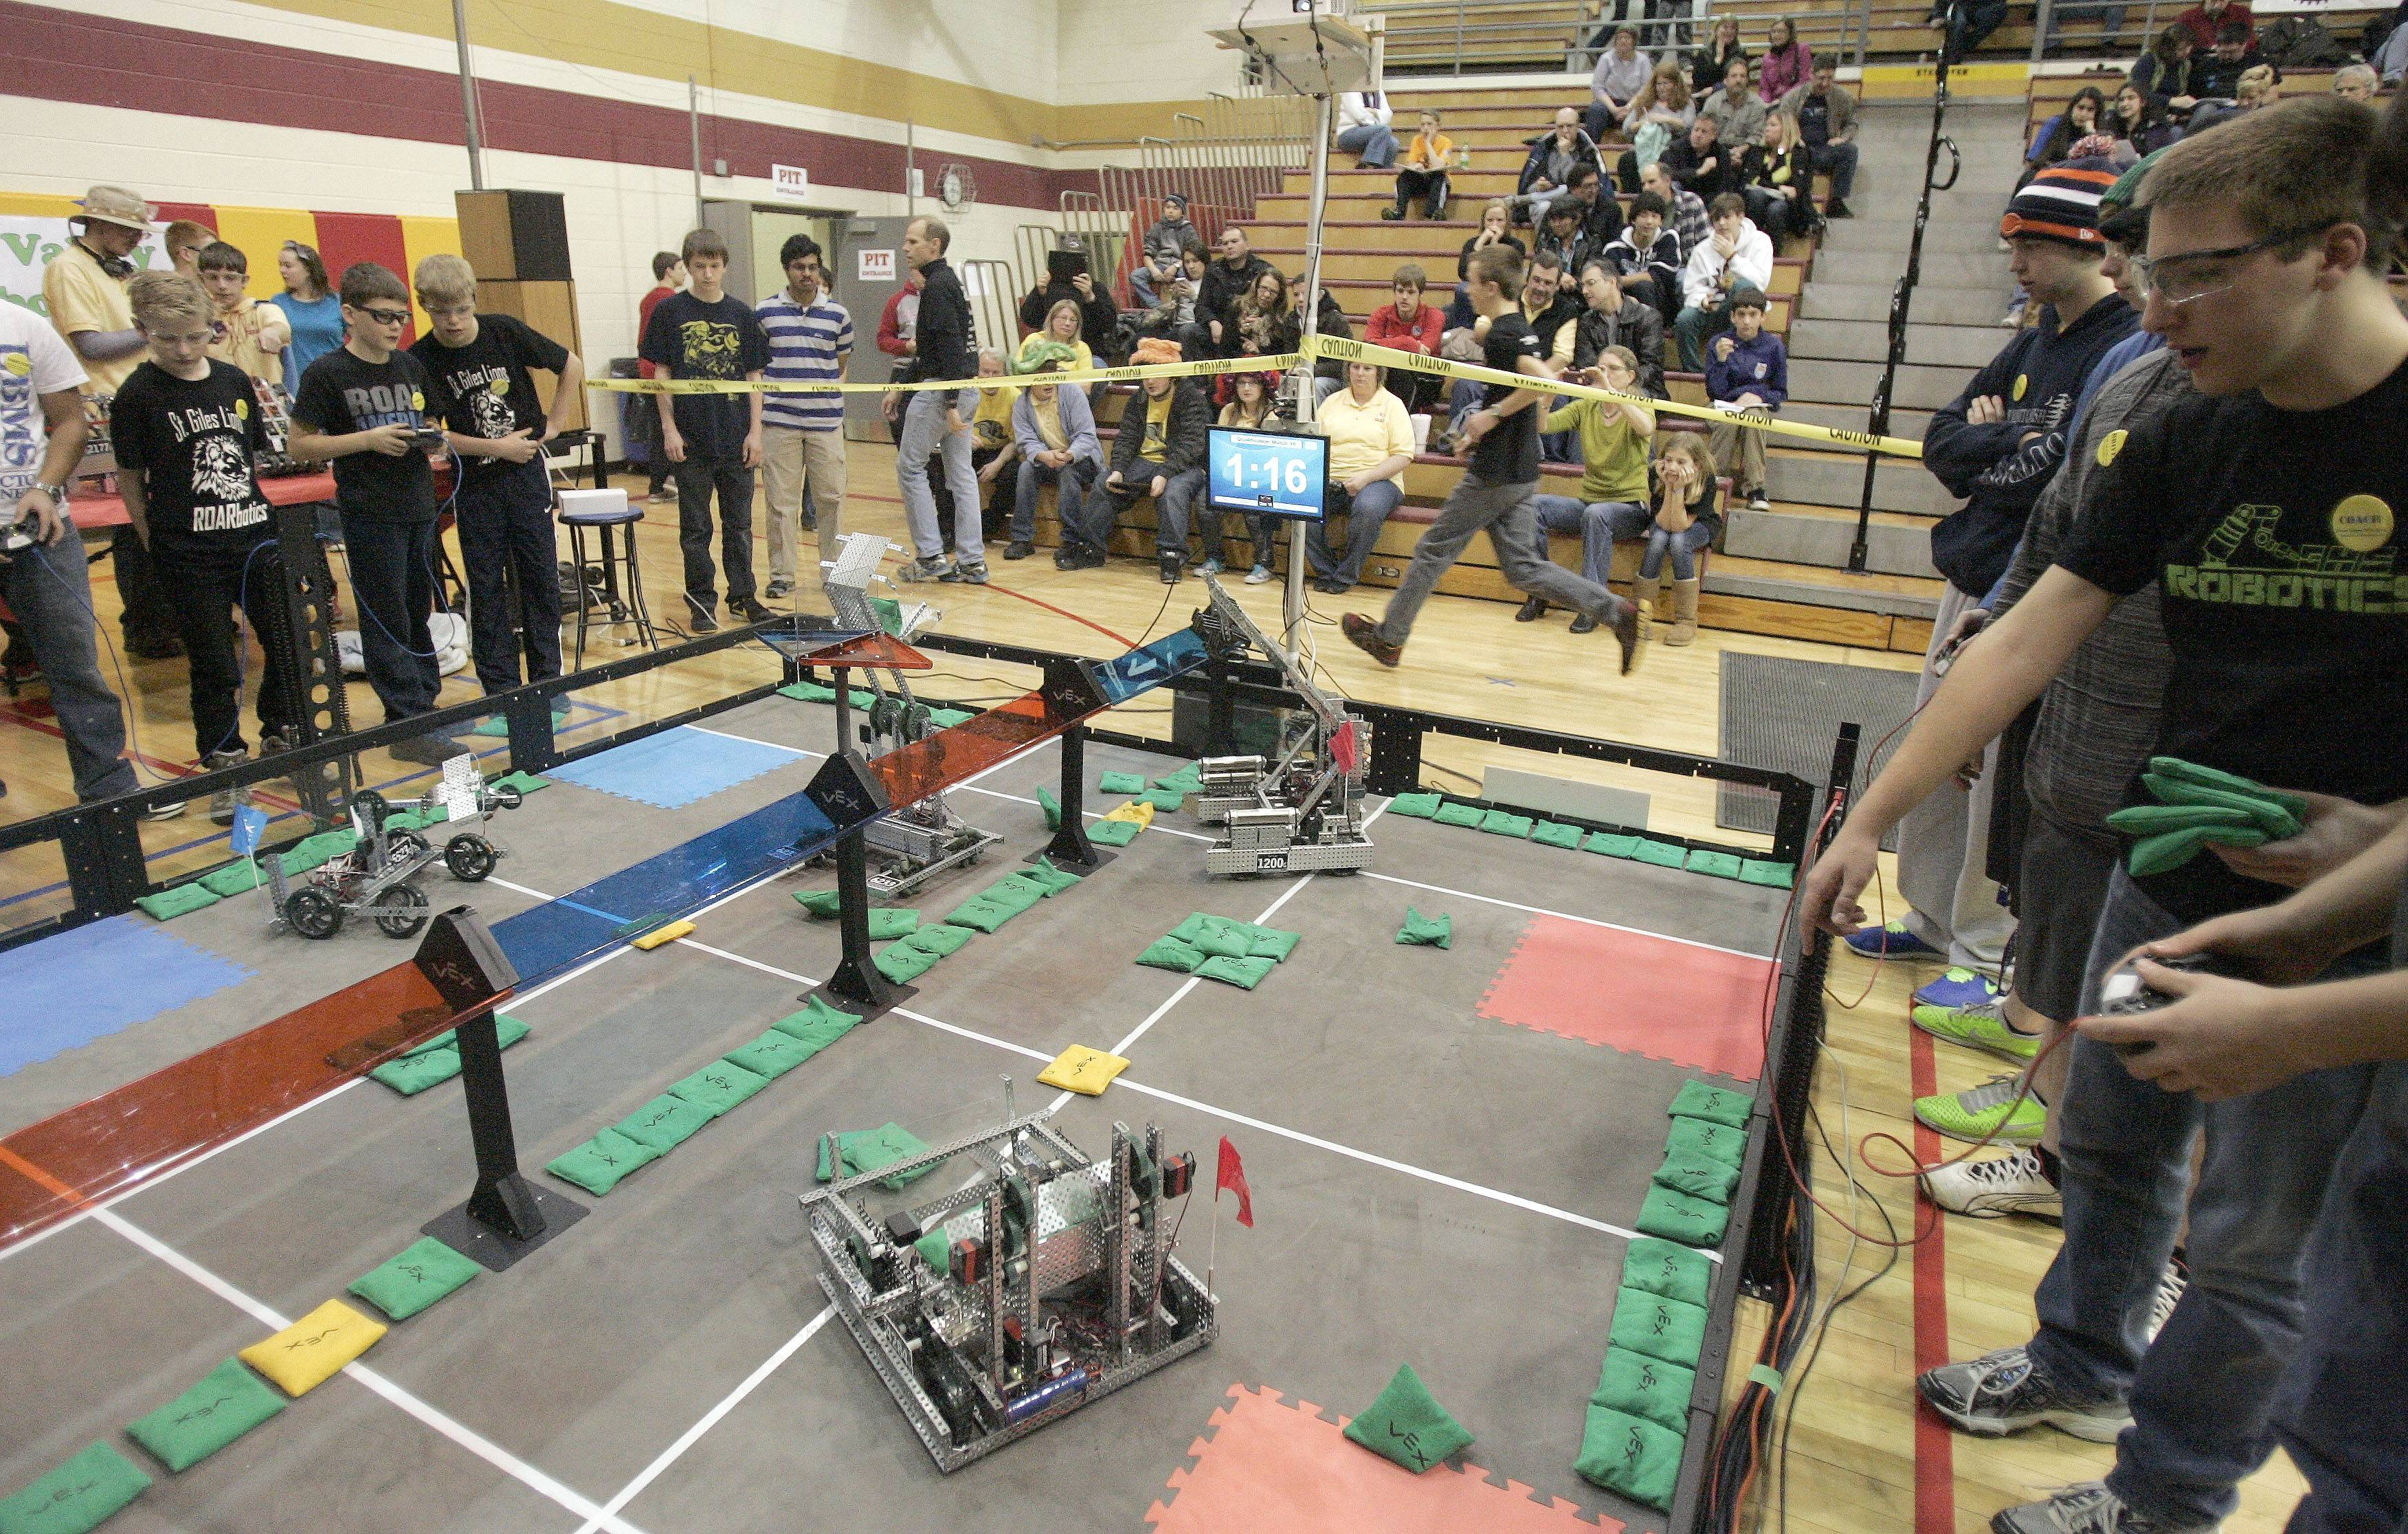 See more than 30 teams from across the state competing in the Illinois Vex Robotics State Championship on Saturday, March 8, at Rotolo Middle School in Batavia.